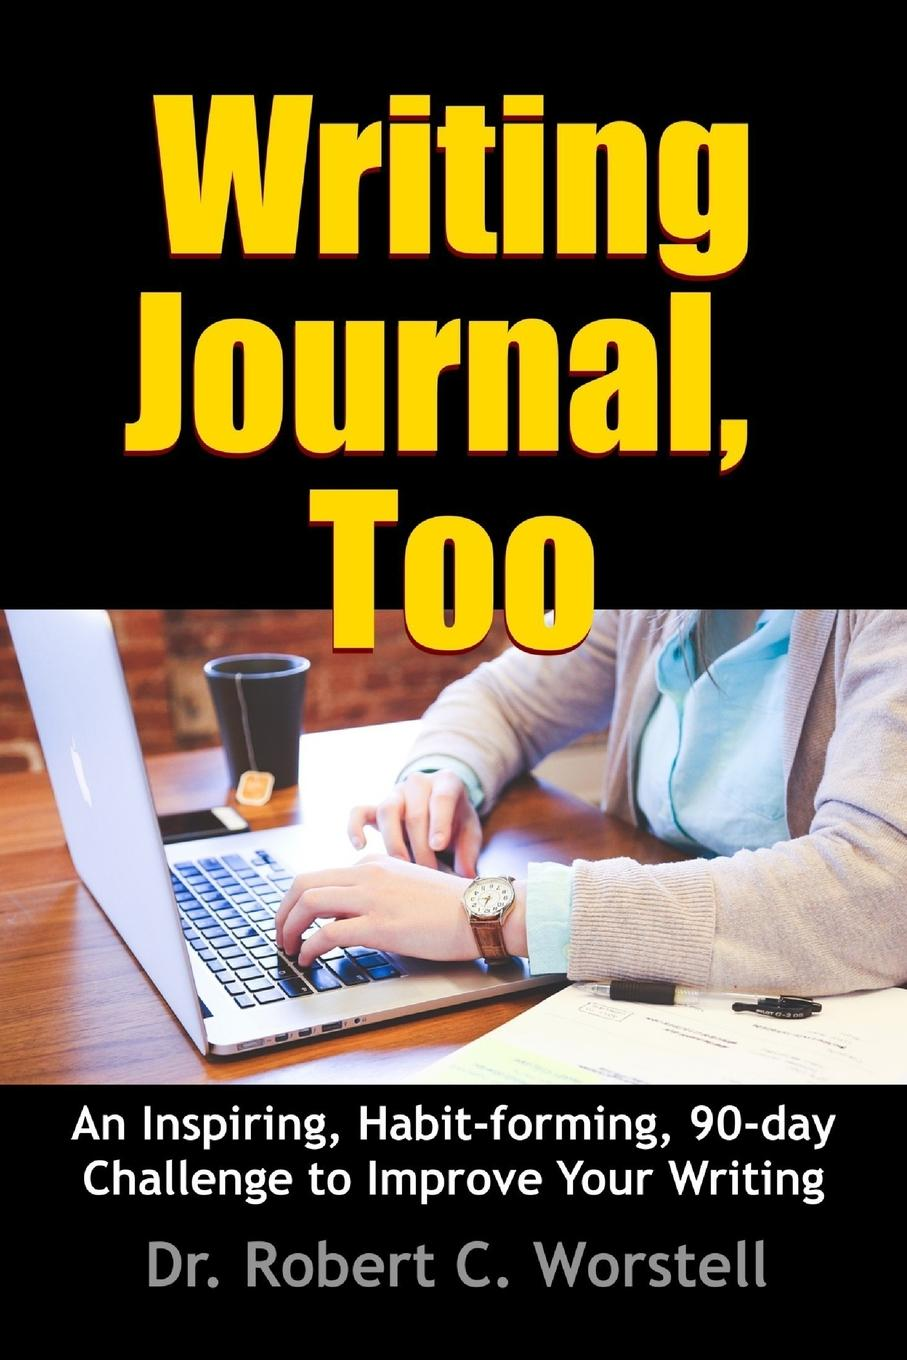 цена Dr. Robert C. Worstell Writing Journal, Too - An Inspiring, Habit-forming, 90-day Challenge to Improve Your Writing онлайн в 2017 году